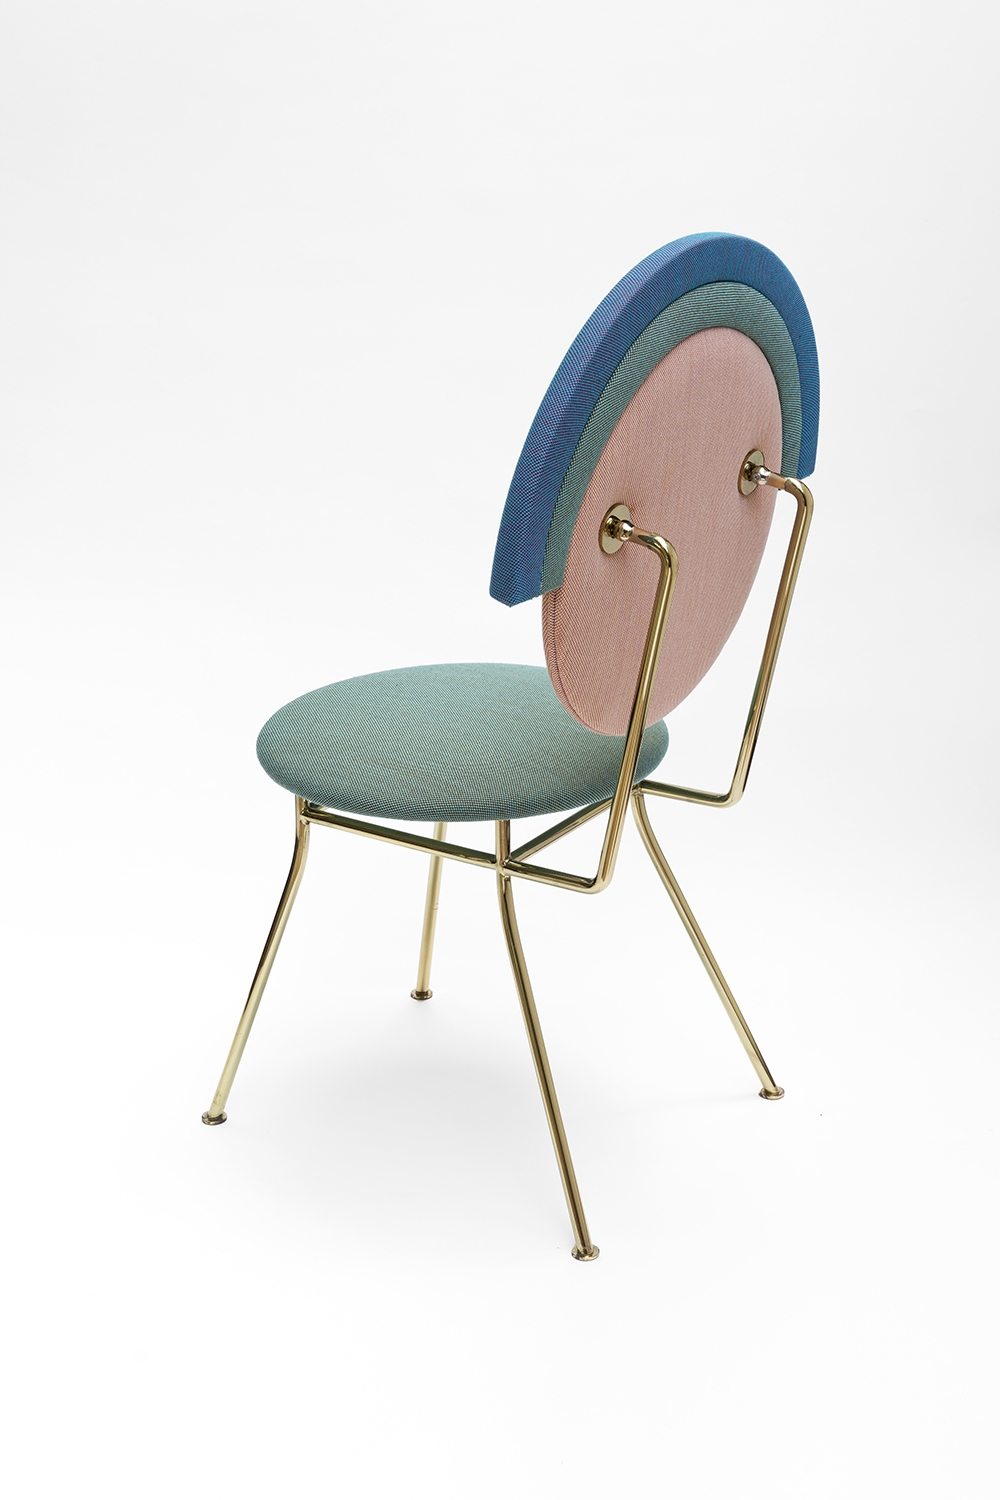 merve kahraman products interiors iris chair perspective.jpg